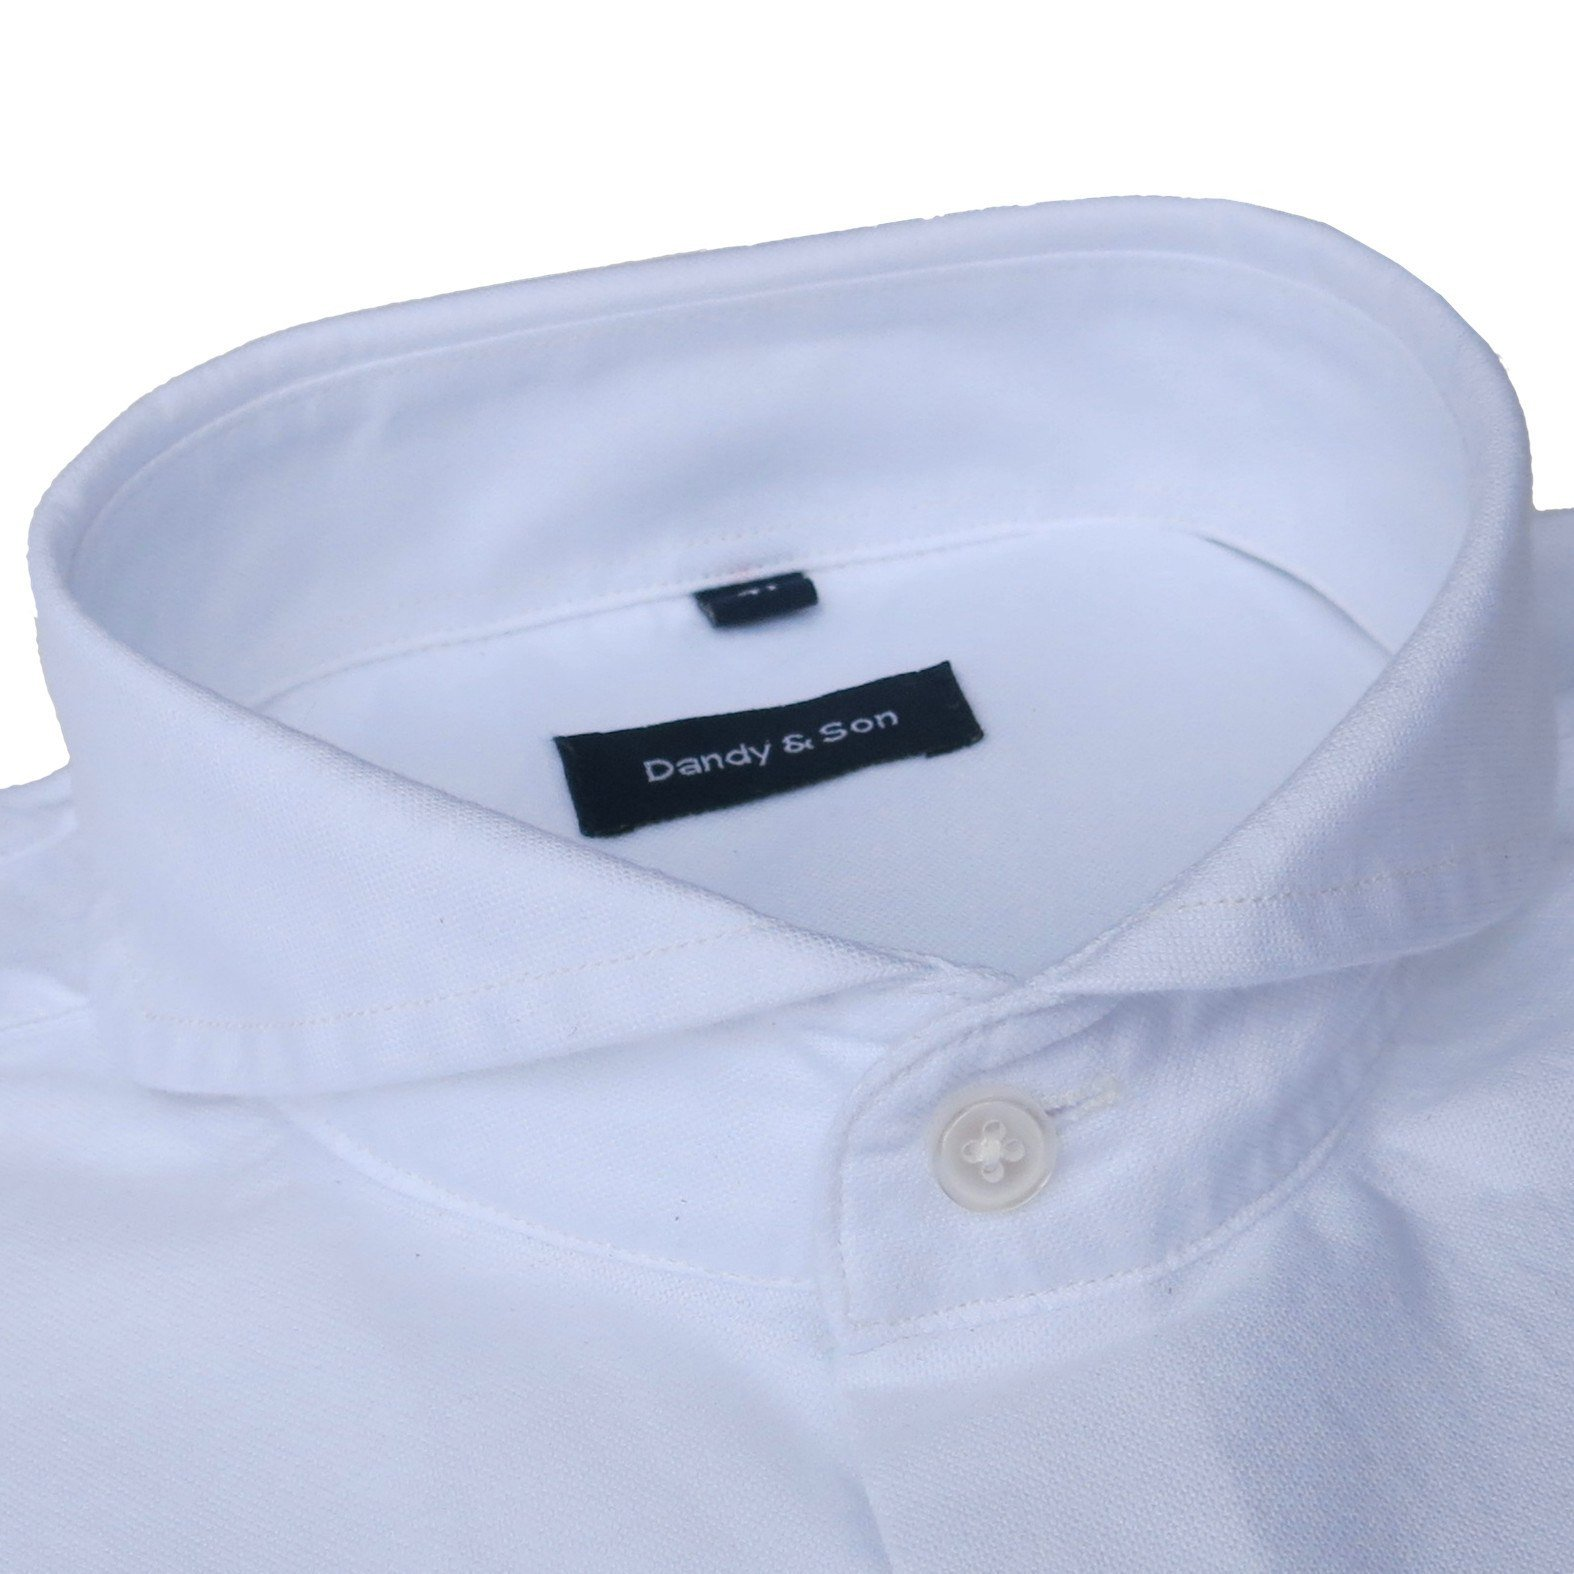 Mens Shirt Collars | Extreme Spread Collar Dress Shirts | Cutaway Collar